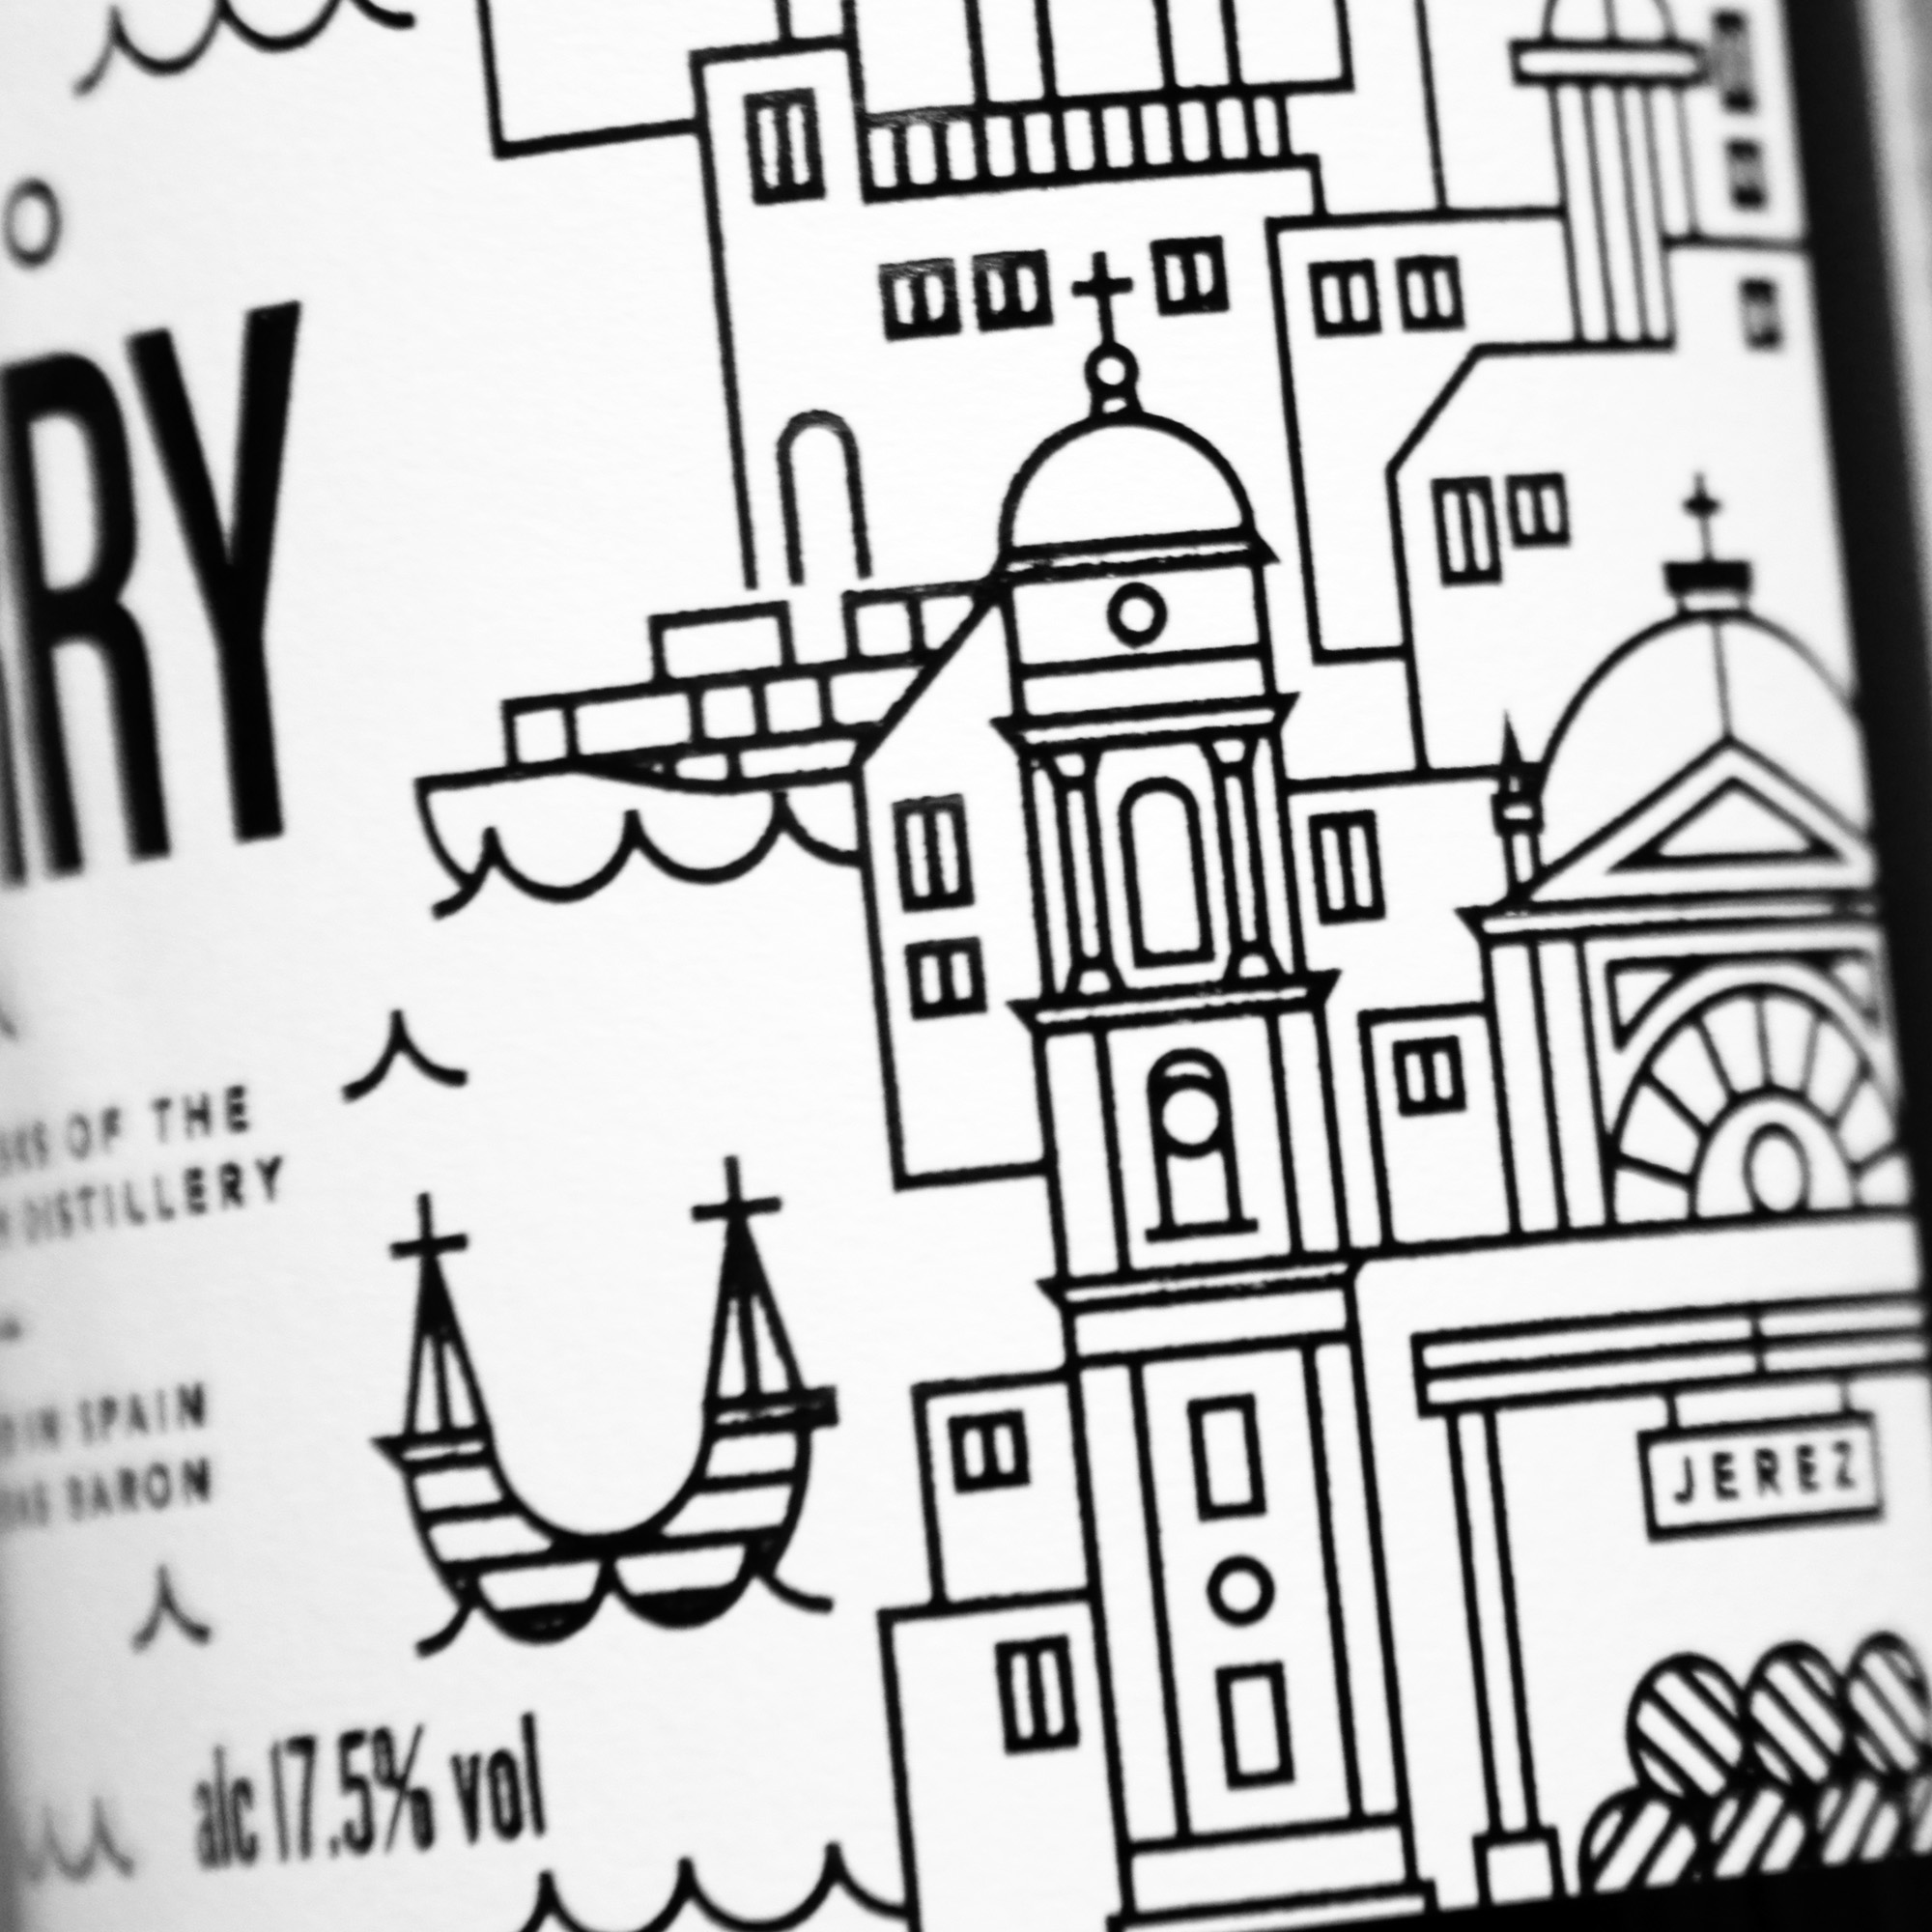 - The wines are then fortified with grape spirit and matured in 'Solera' warehouses in the towns of Jerez and Sanlúcar de Barrameda.